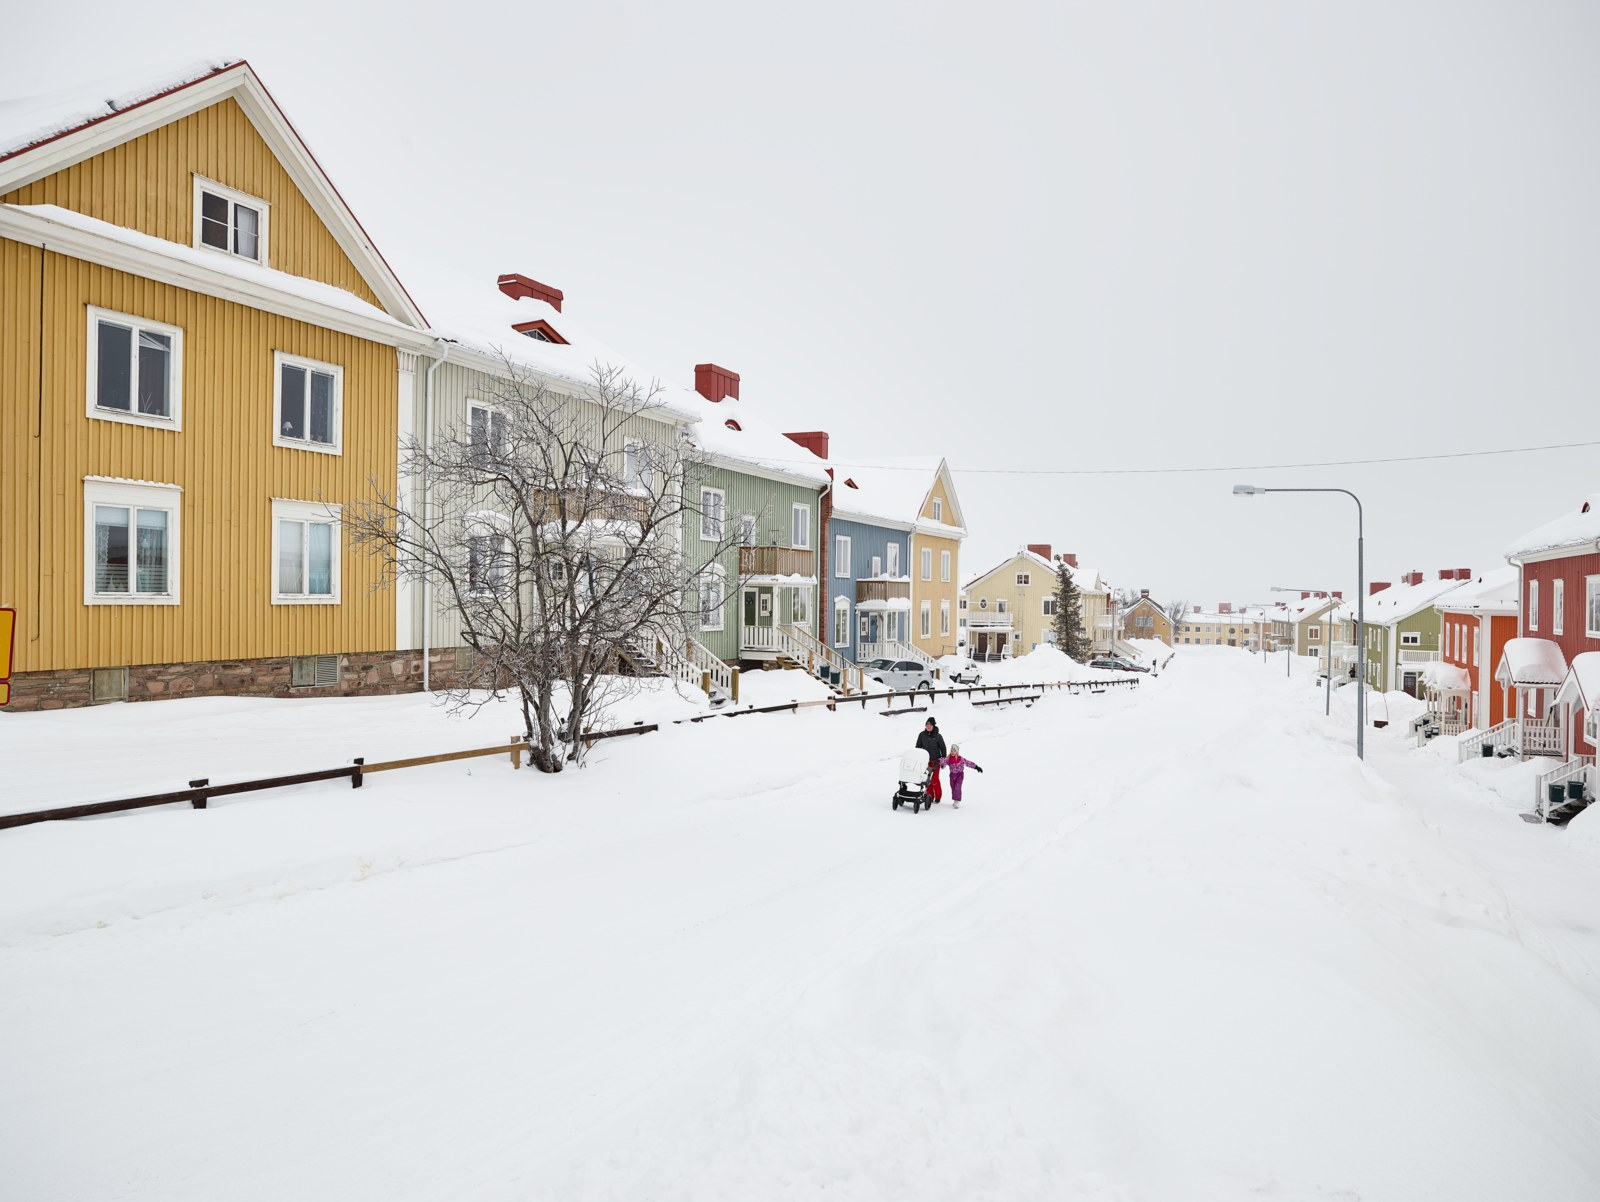 Kiruna, a town on the move